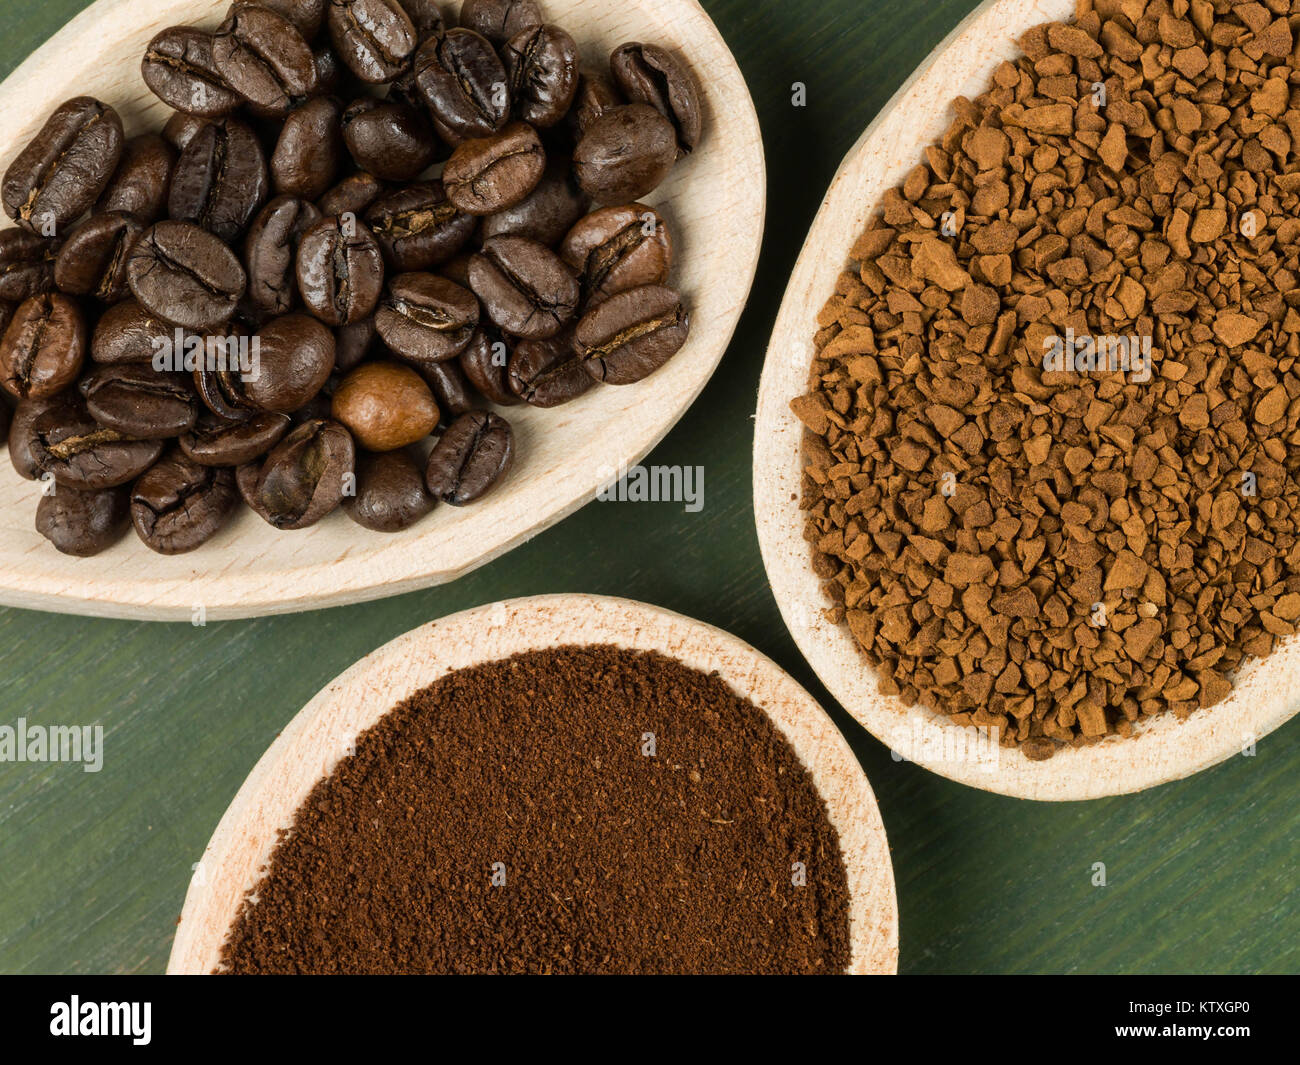 Spoonfuls of Instant Granulated and Roast Coffee Beans Against a Green Background - Stock Image